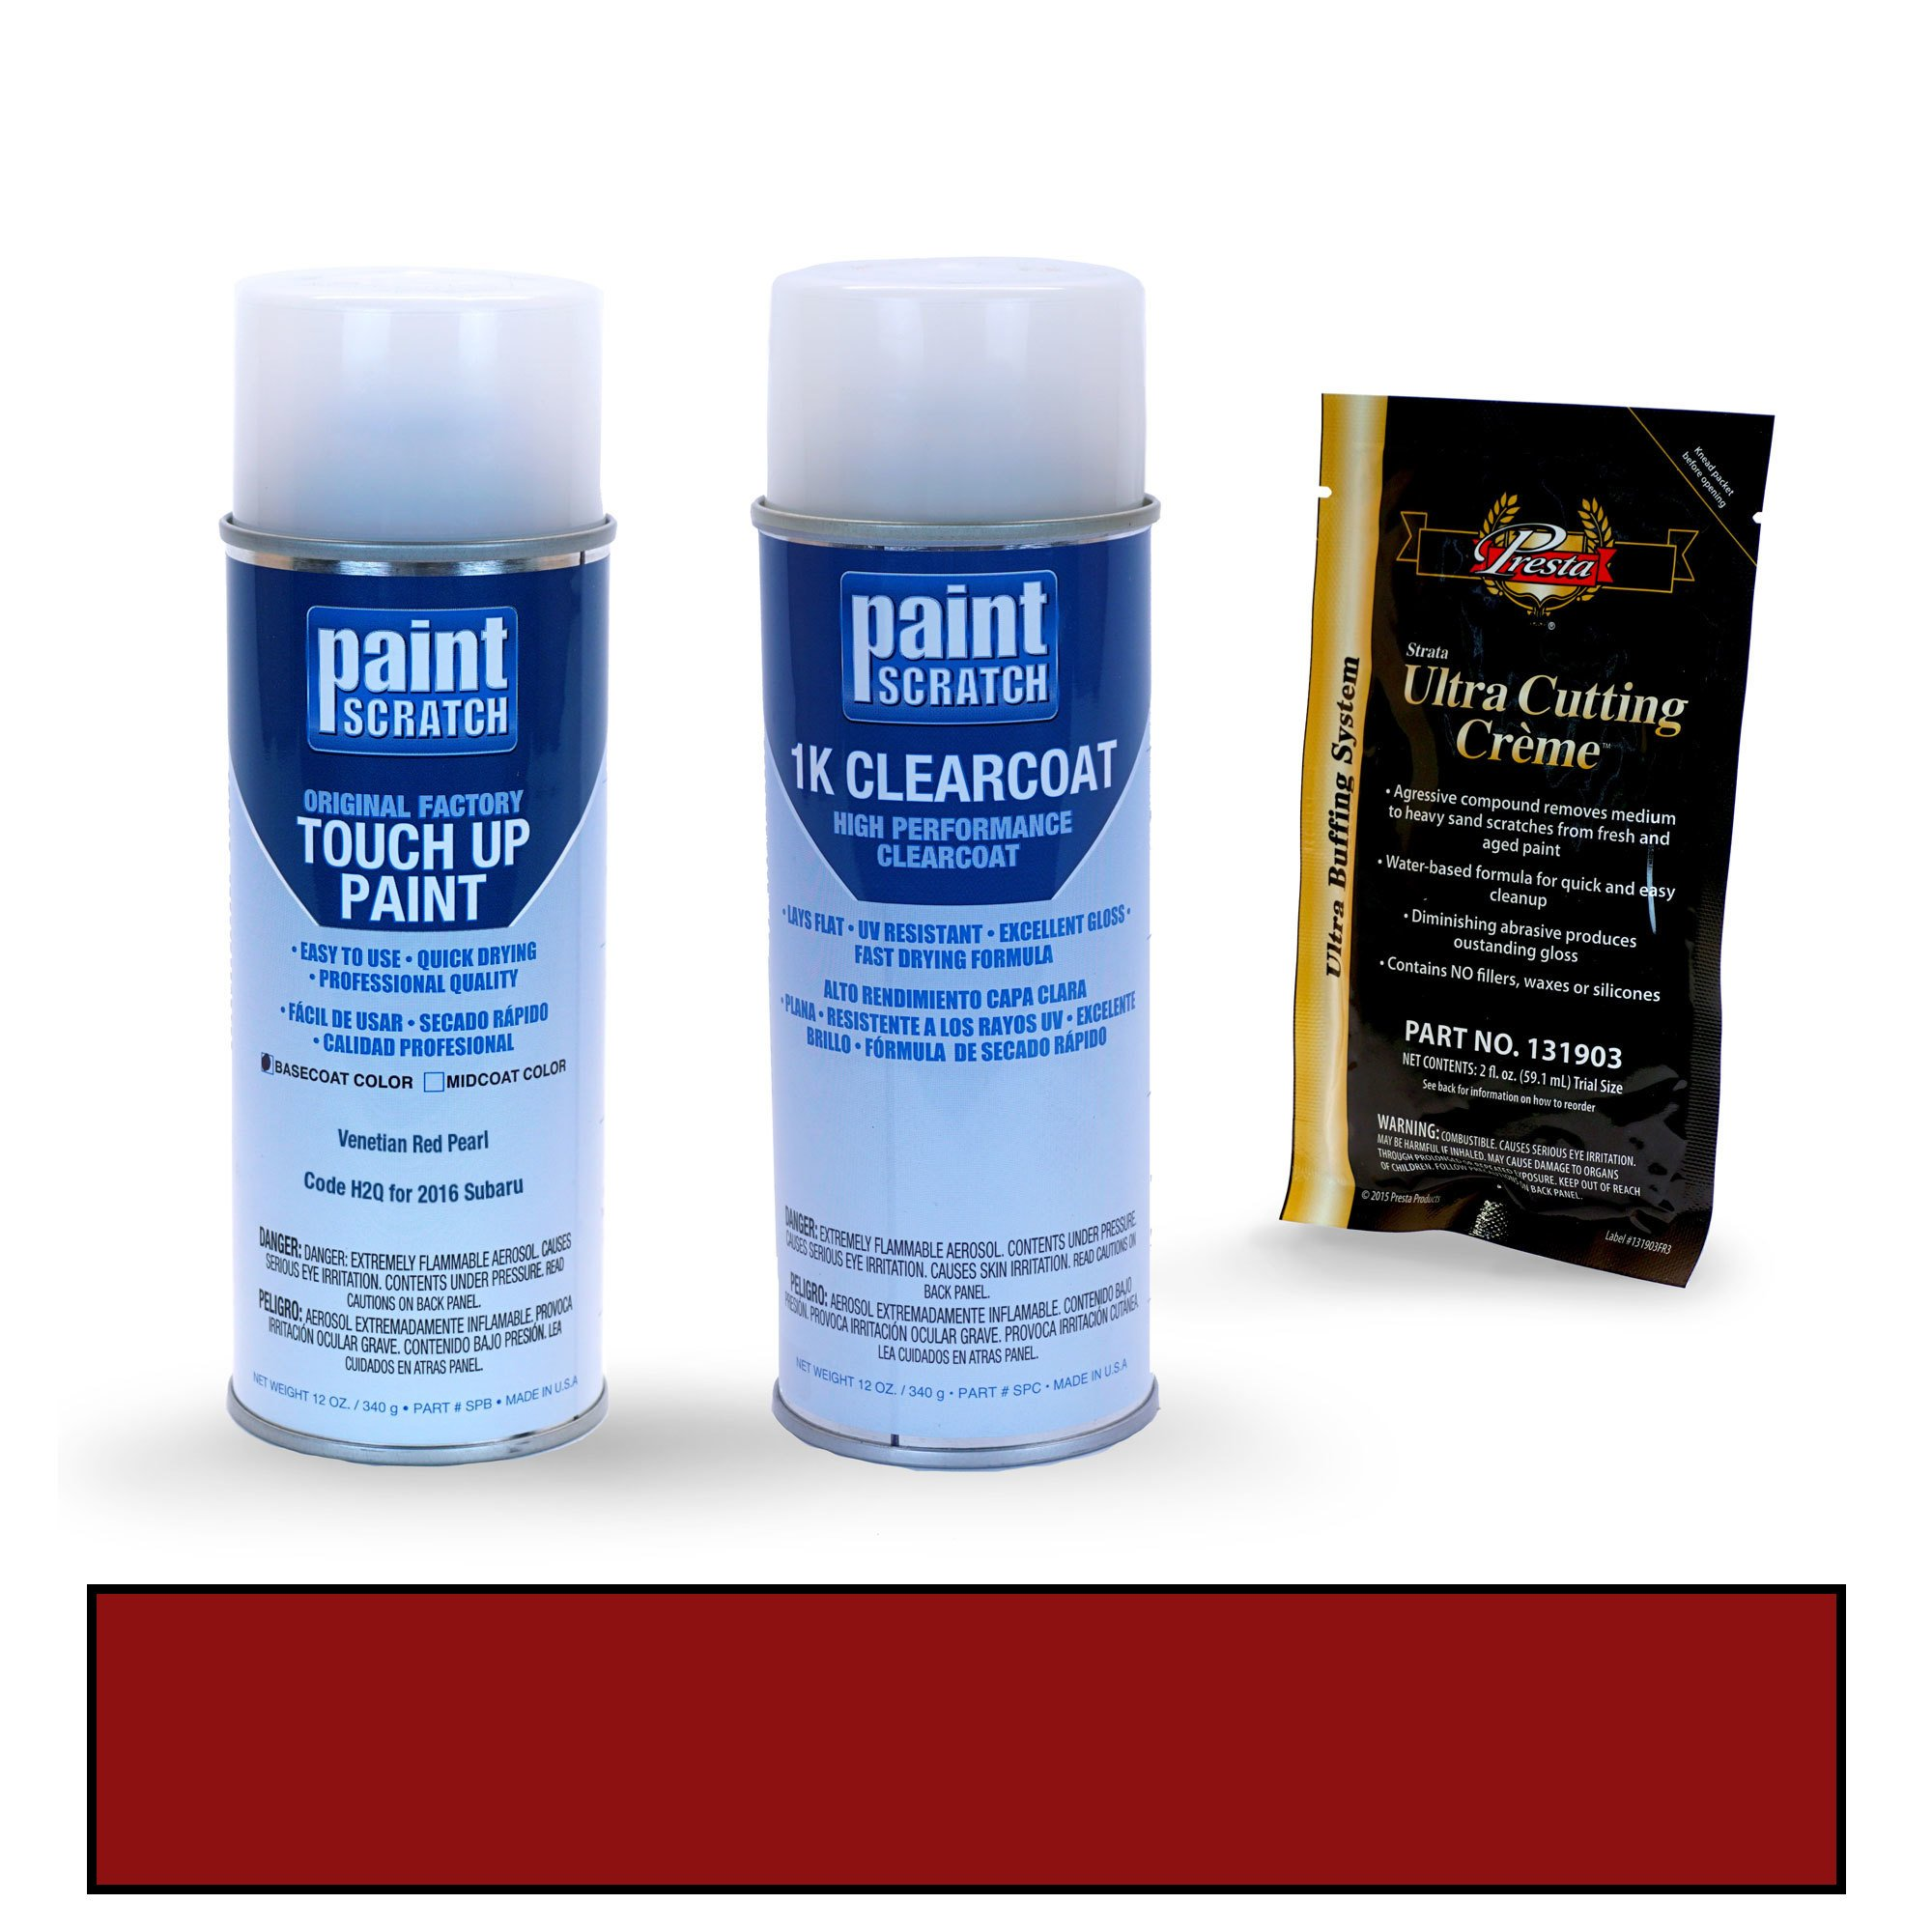 PAINTSCRATCH Venetian Red Pearl H2Q for 2016 Subaru Crosstrek - Touch Up Paint Spray Can Kit - Original Factory OEM Automotive Paint - Color Match Guaranteed